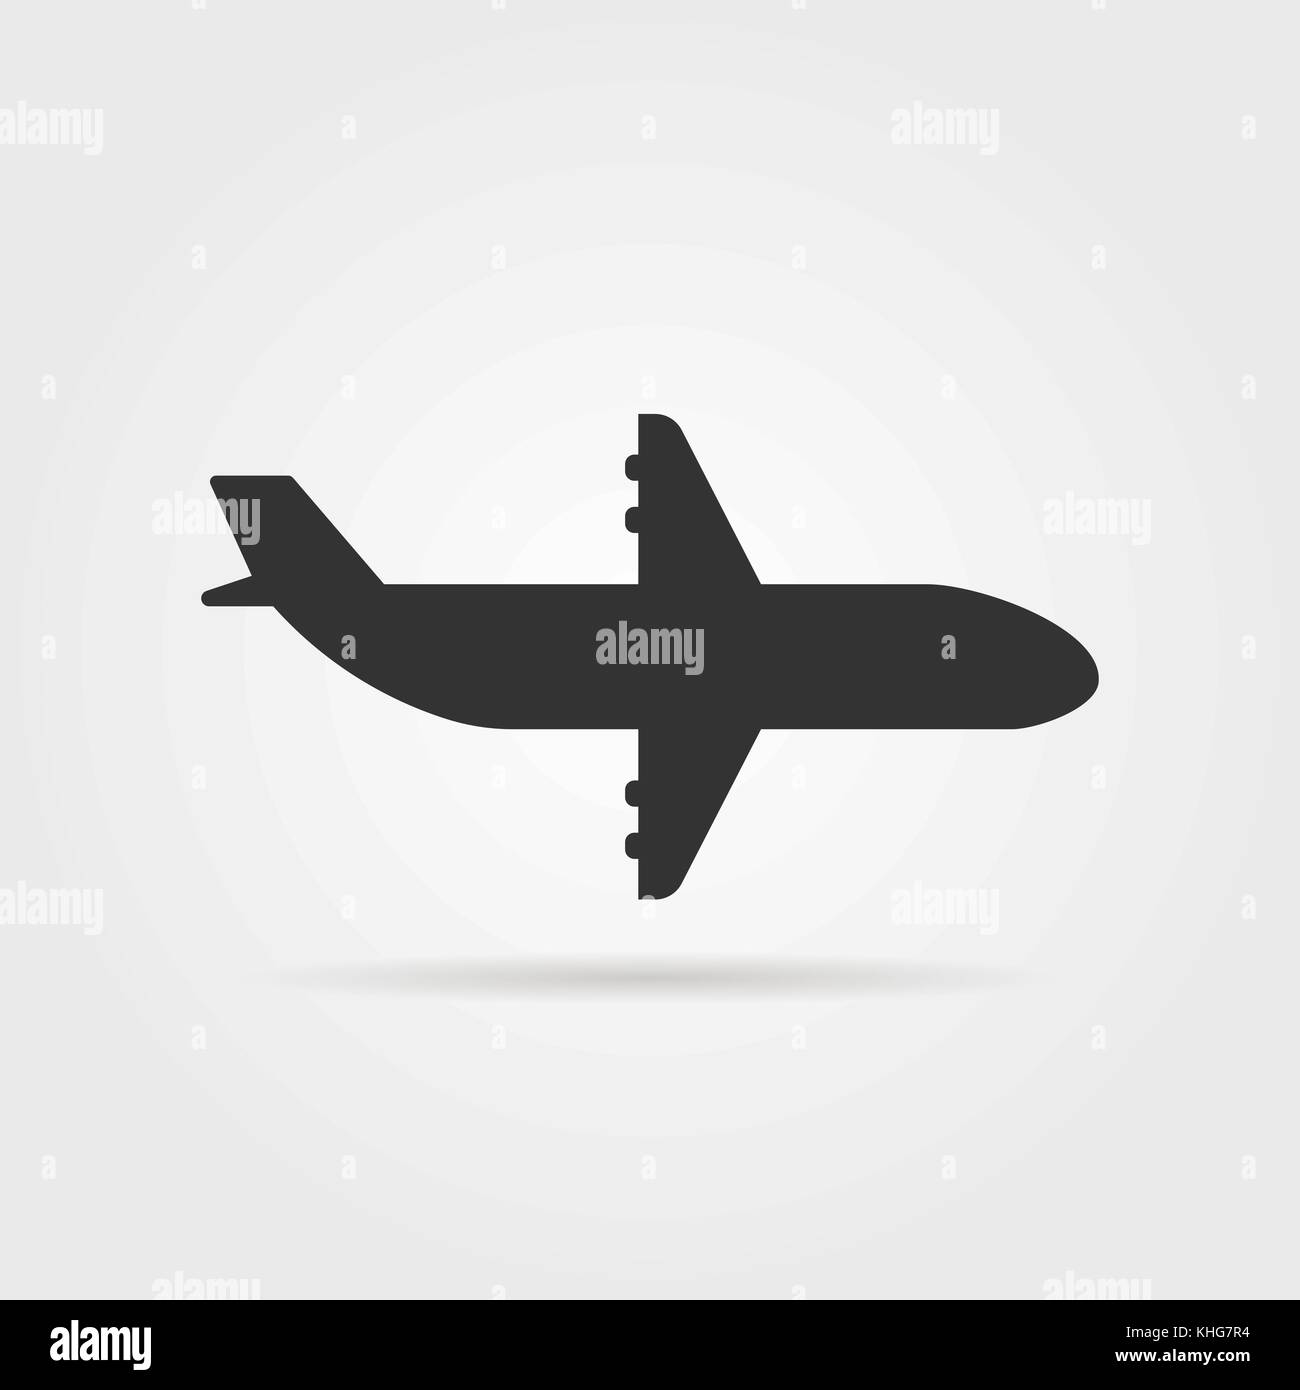 black airplane icon side view with shadow - Stock Image